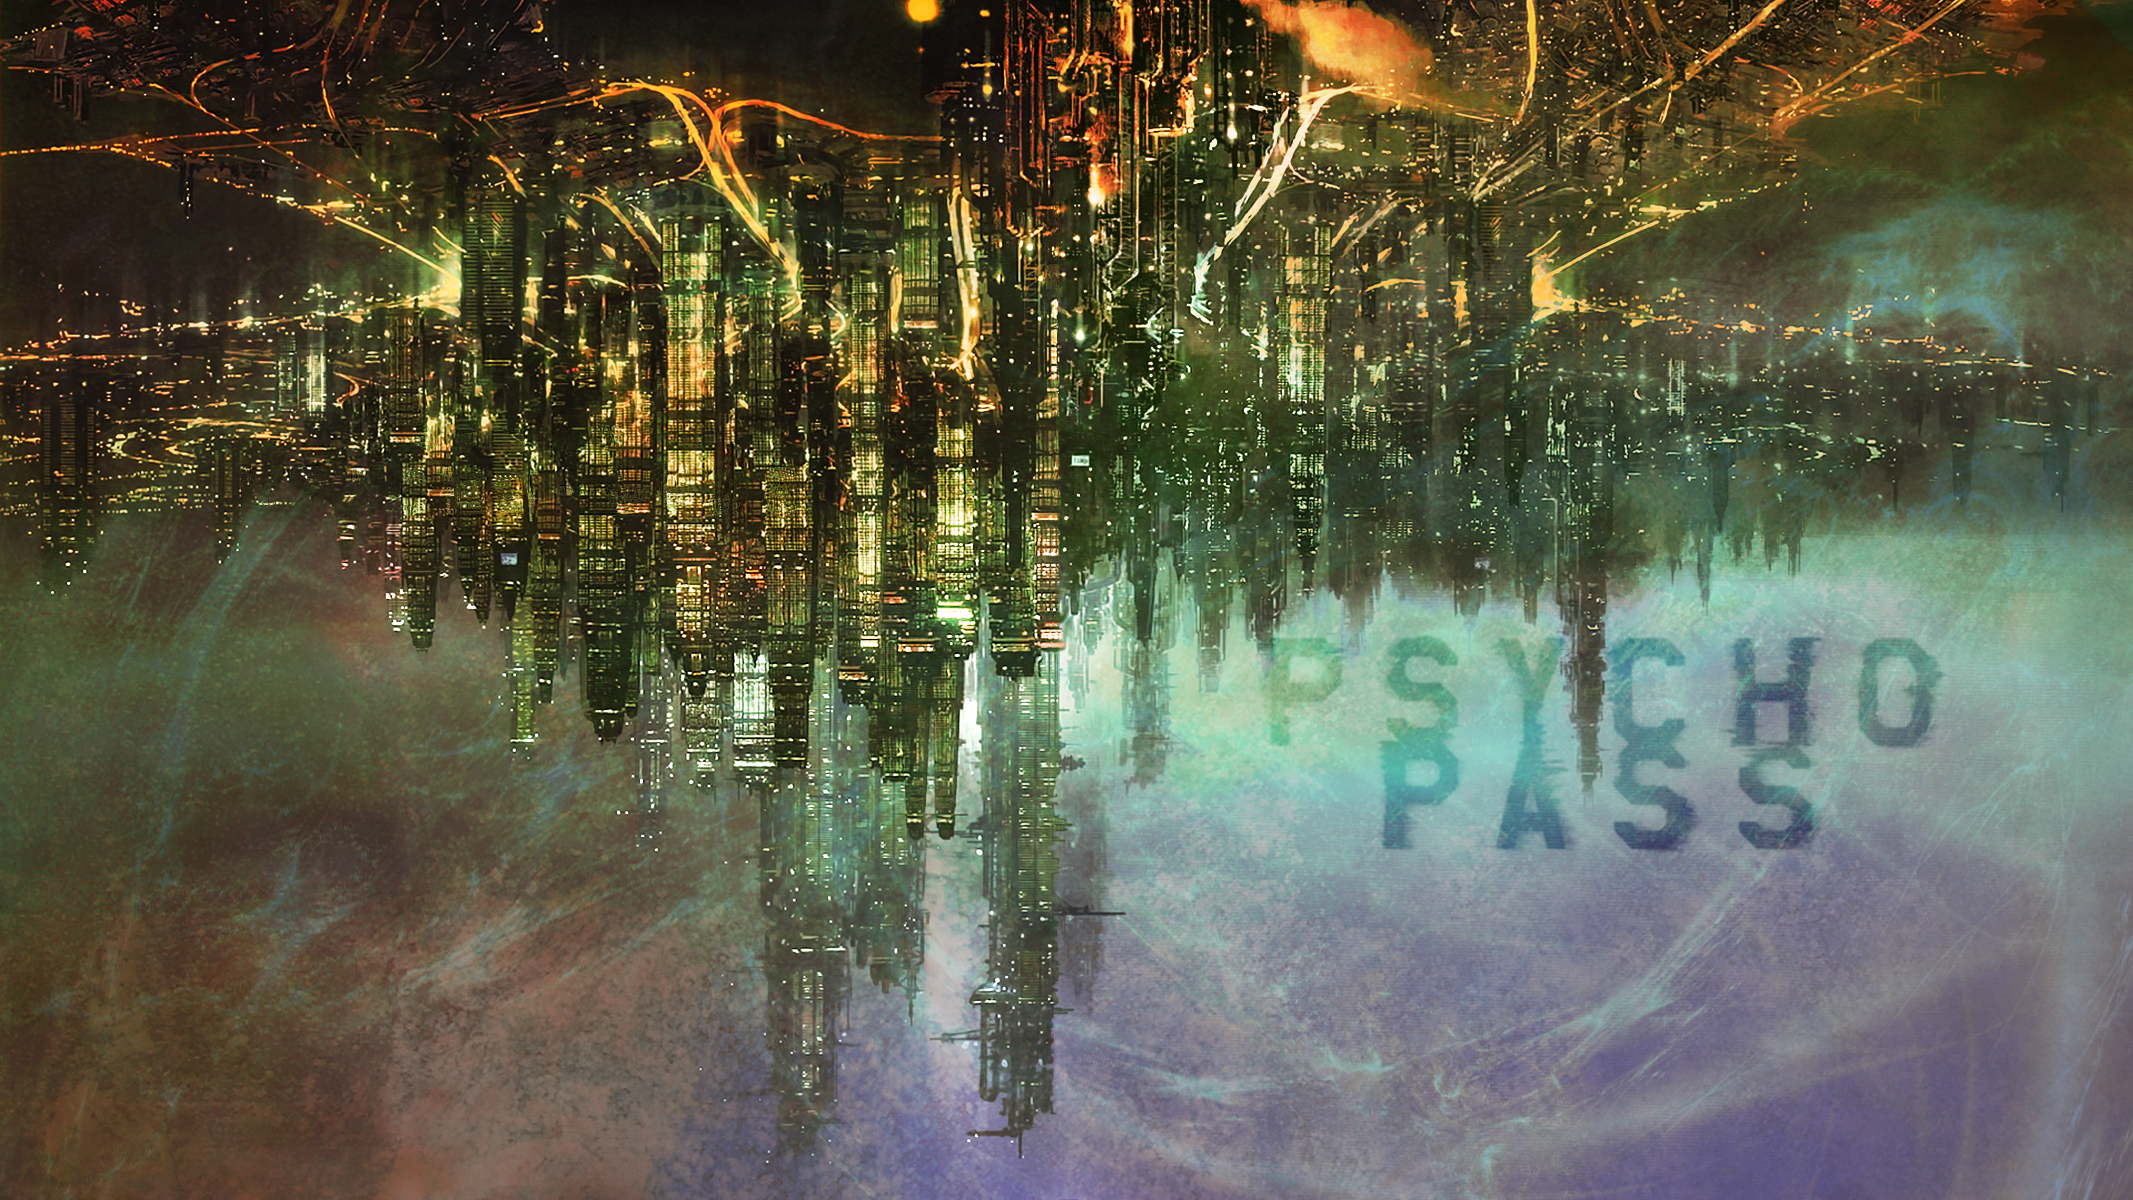 Group Of Psycho Pass Wallpaper City